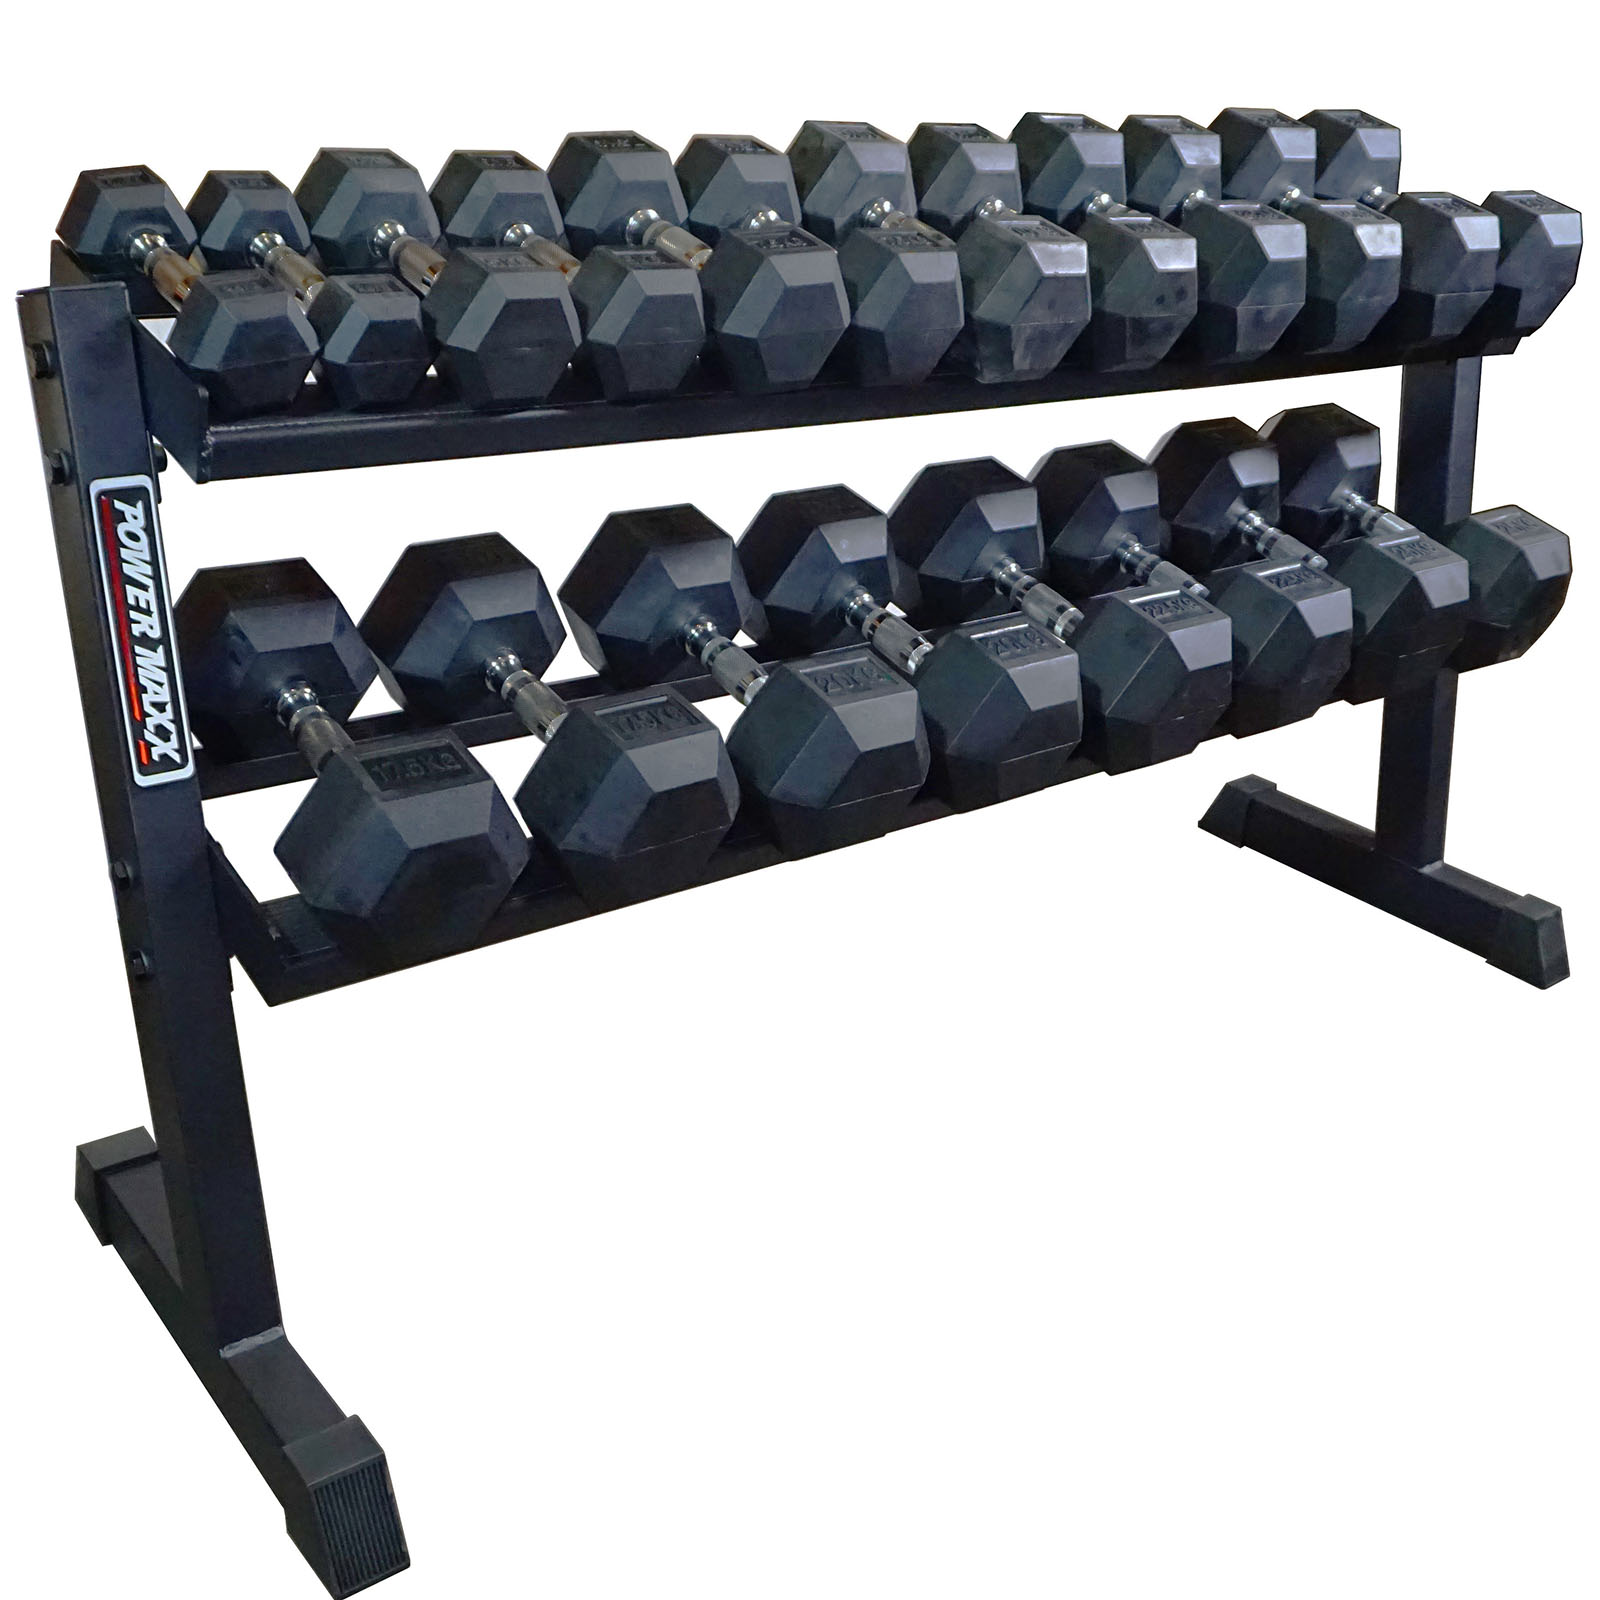 Rubber Dumbbell Set: POWER MAXX 2.5kg -25kg Rubber Hex Dumbbell Set 10 Pairs